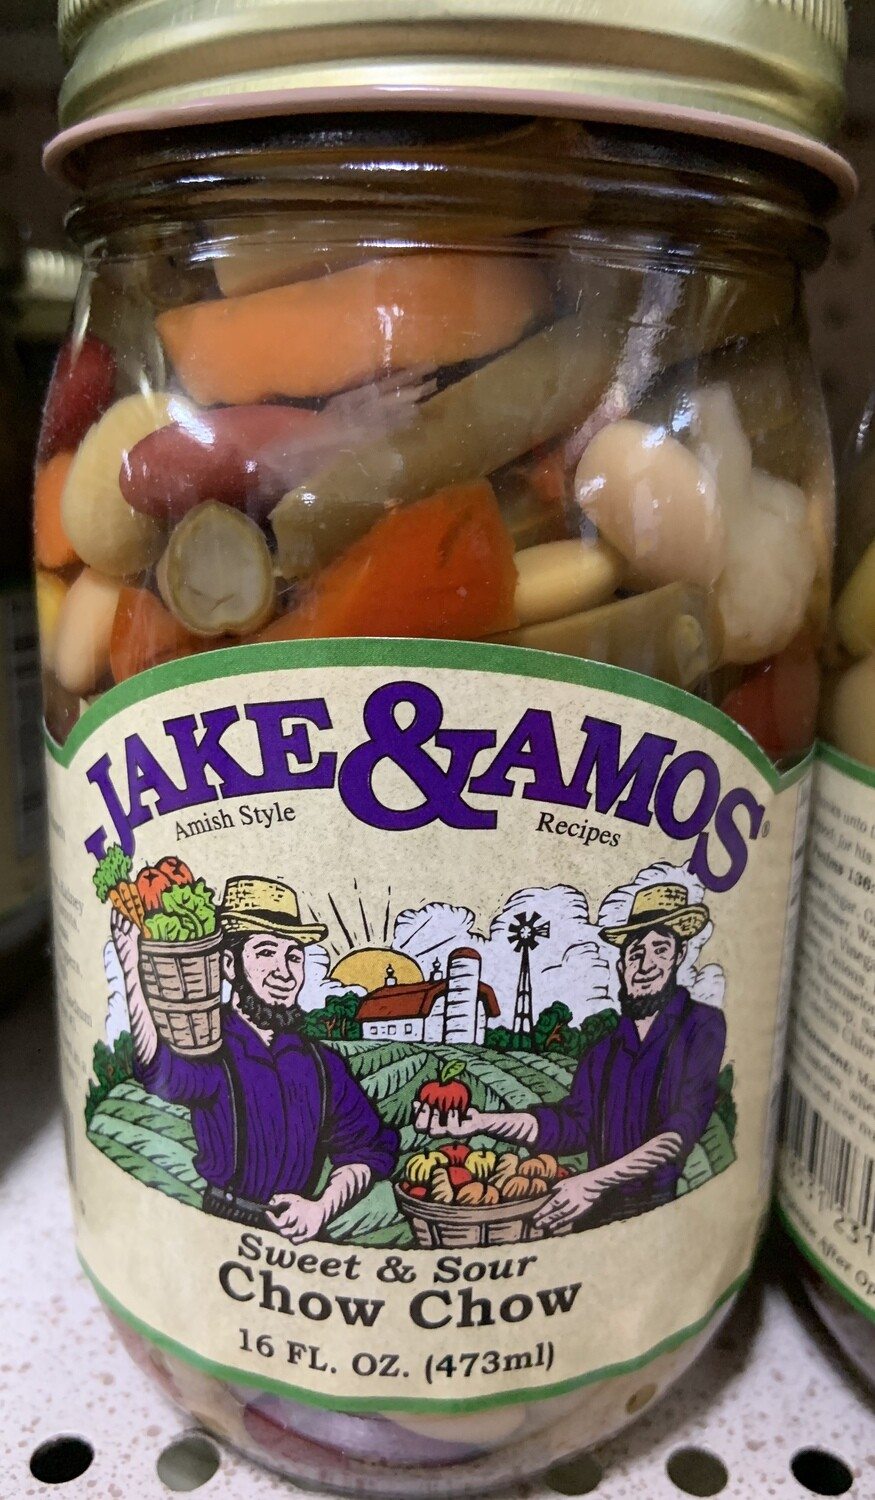 Jake & Amos Sweet and Sour Chow Chow 16 oz